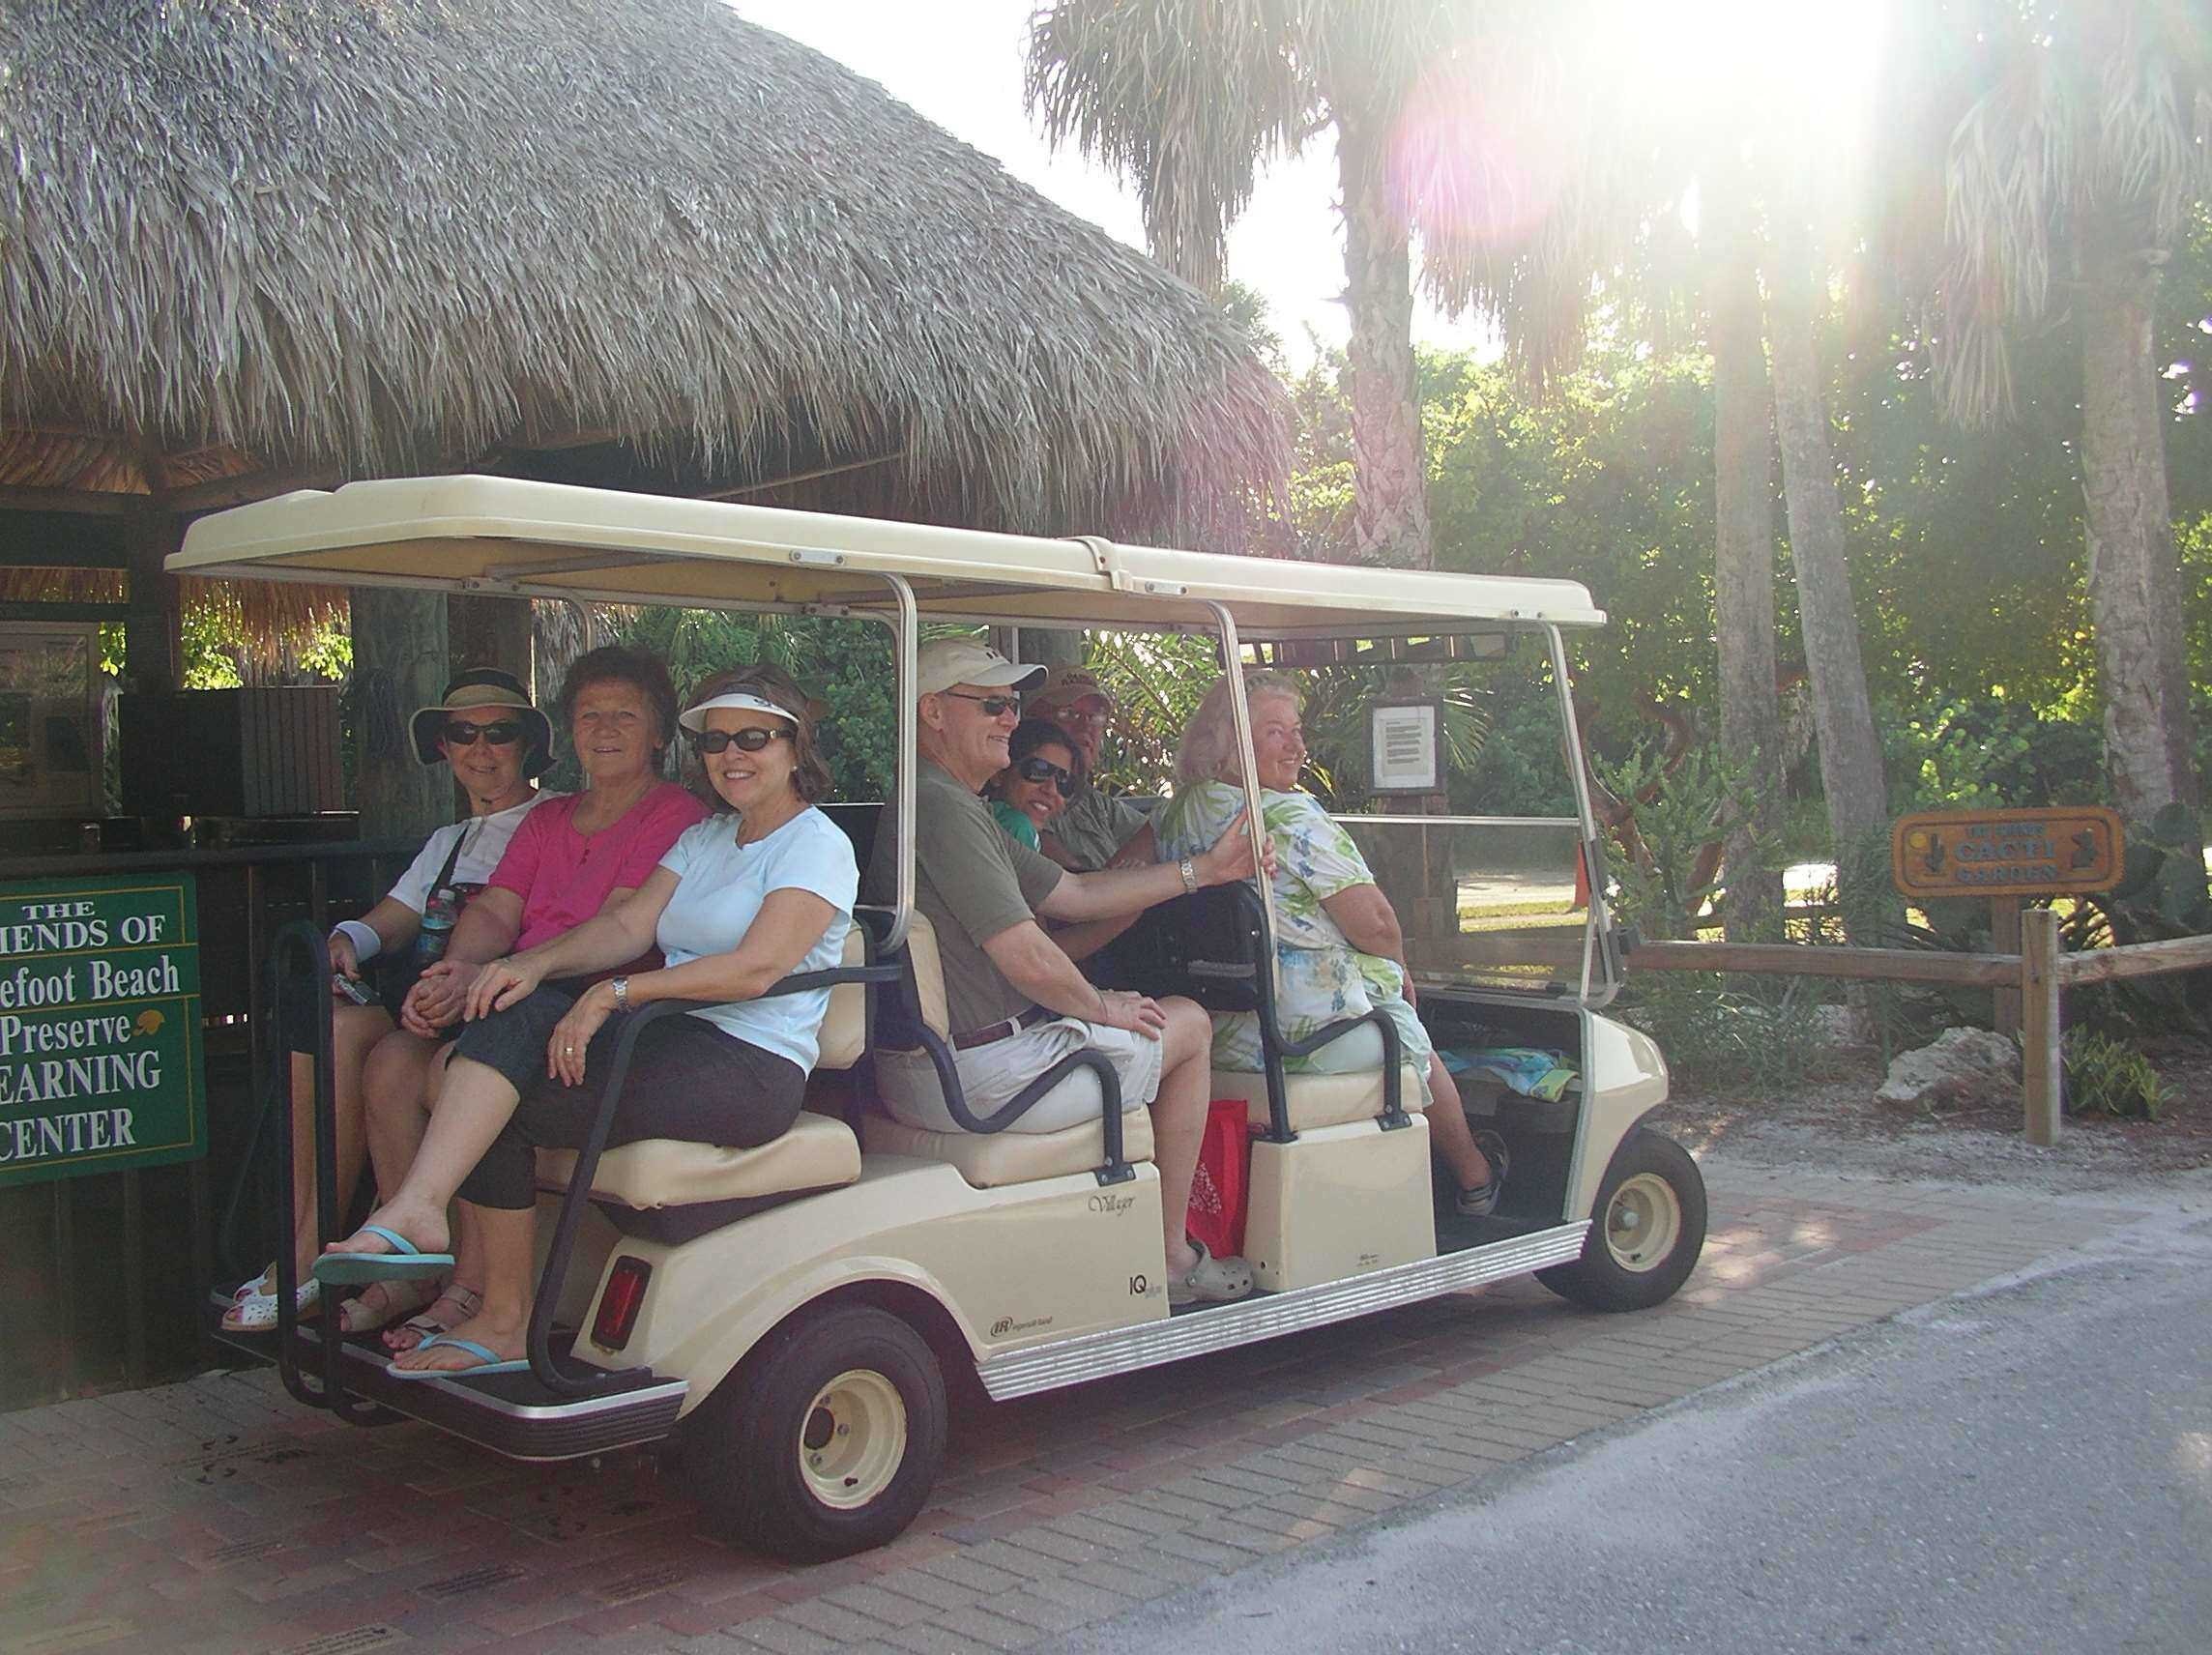 nature walk on golf cart leaves learning center during Green